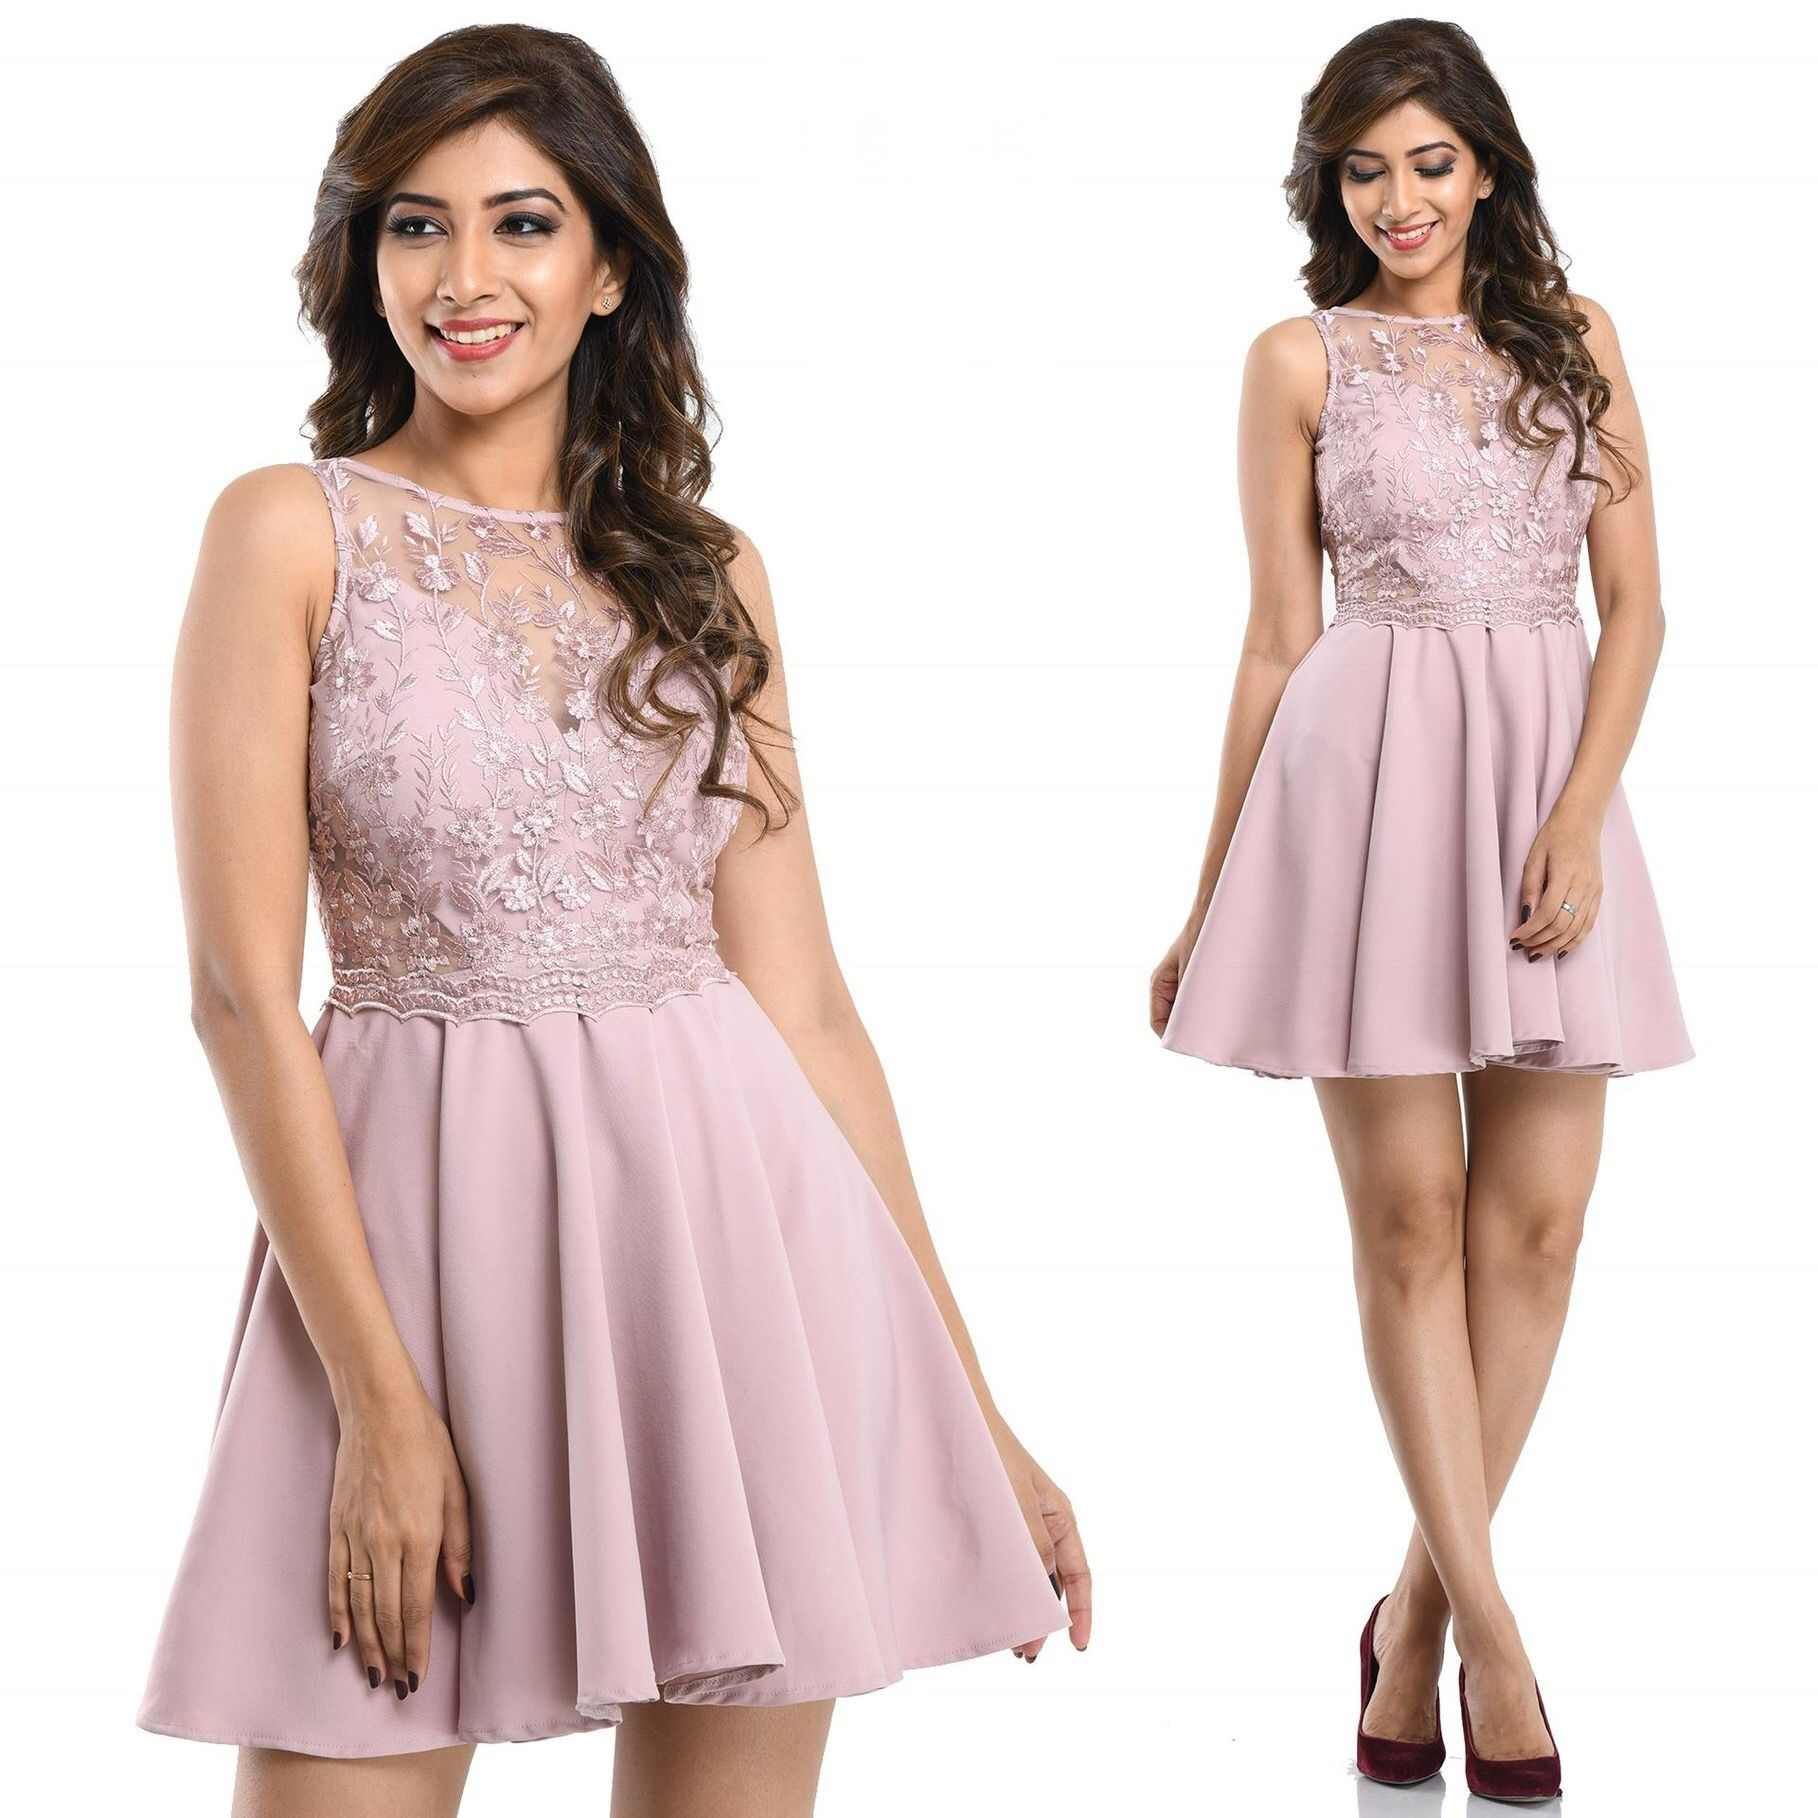 New Stylish Dresses Collection For Girls  Dresses, Mini dress